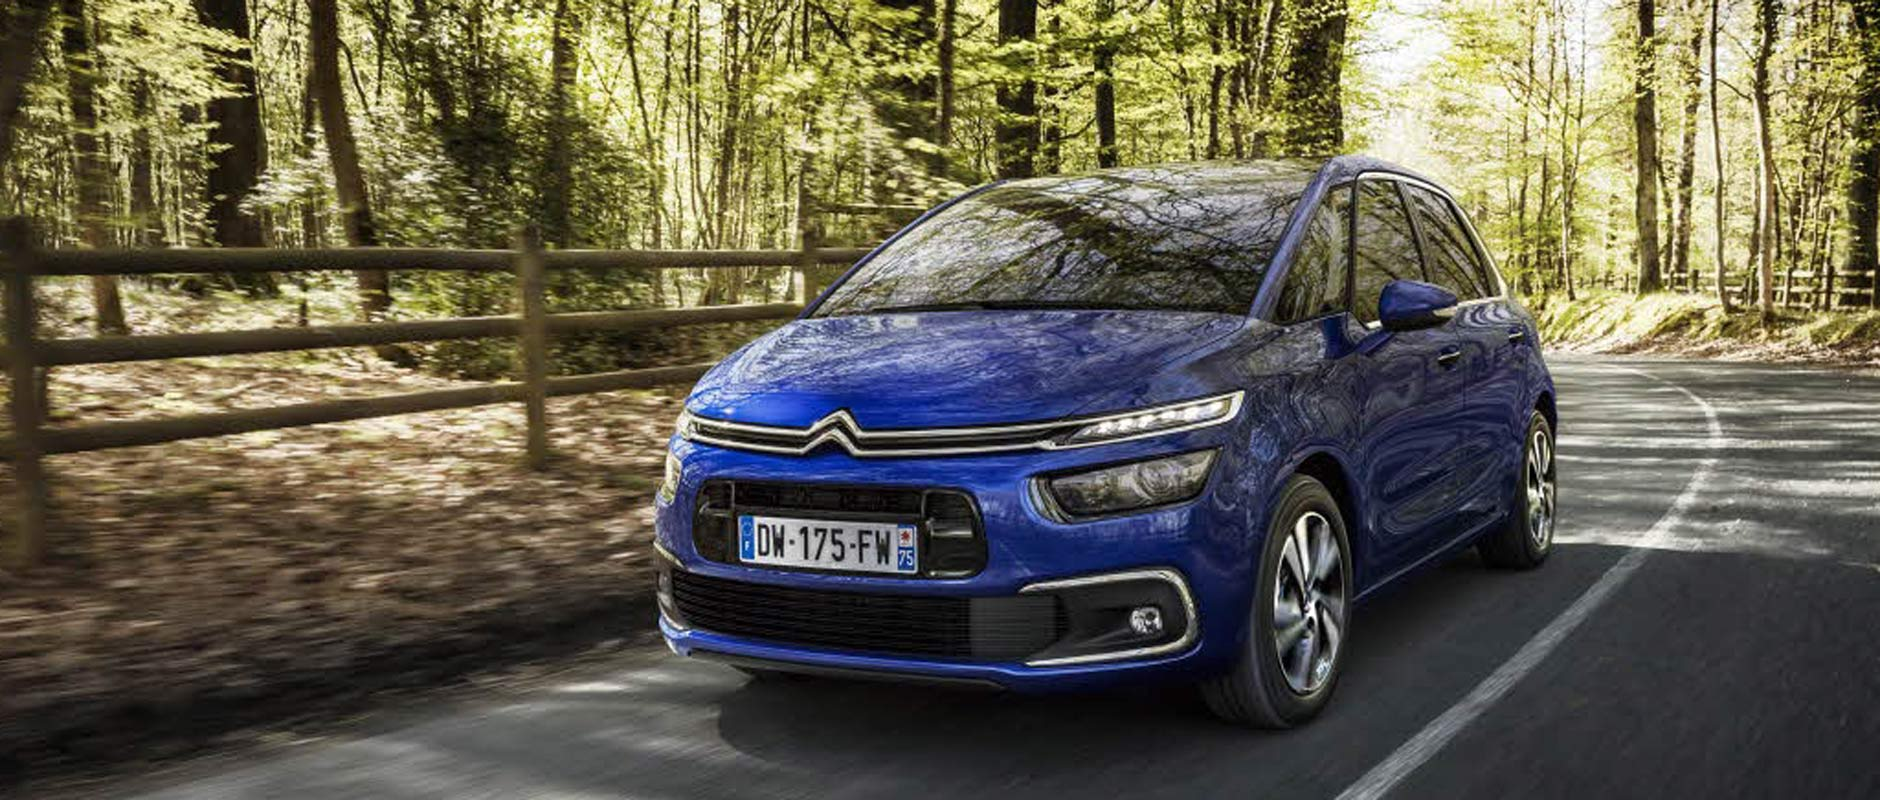 C4 Picasso ACTIVE LANE DEPARTURE WARNING SYSTEM